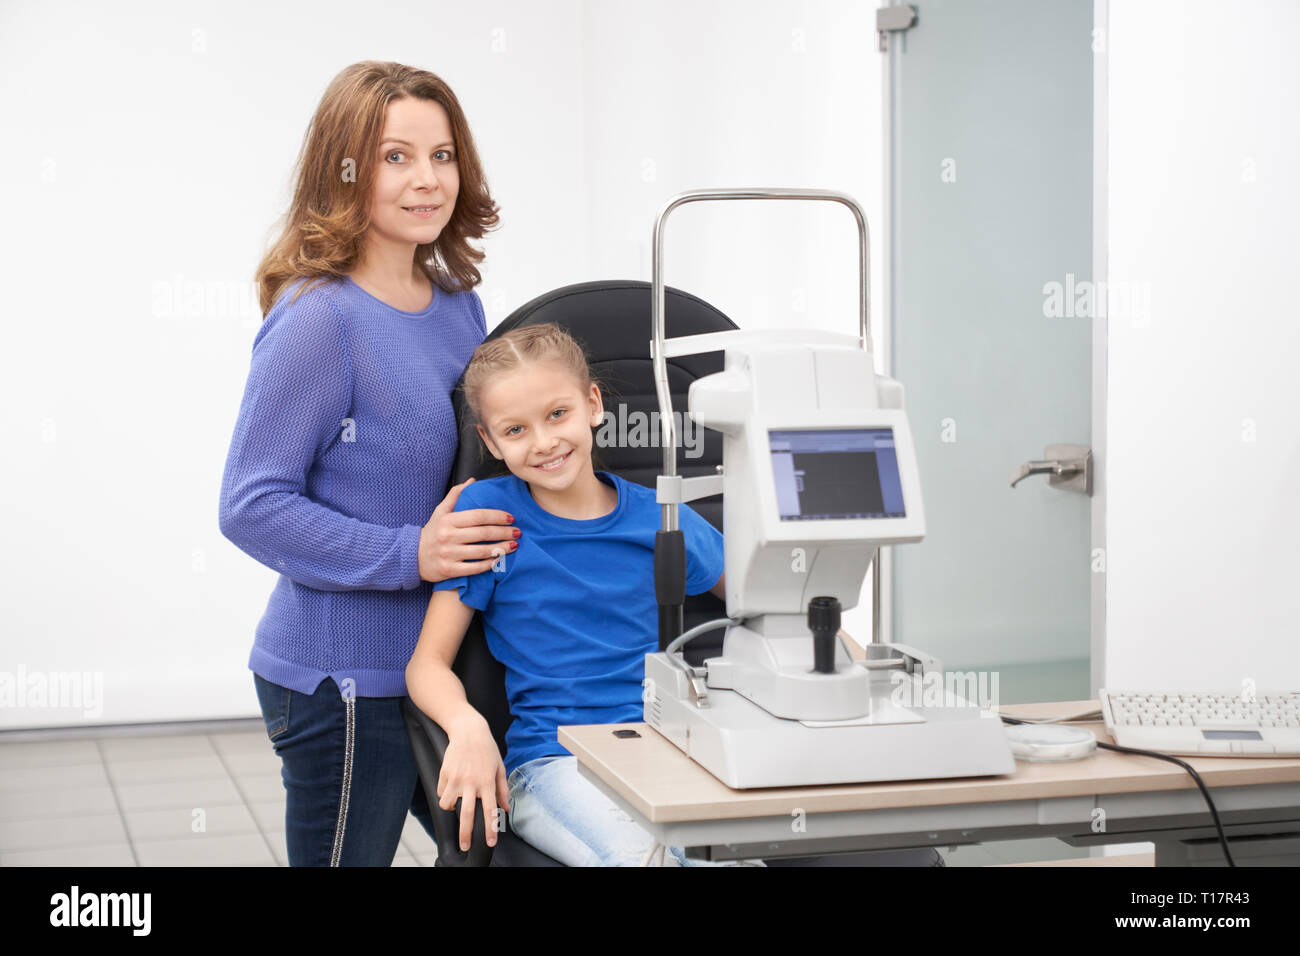 Pretty girl sitting in chair at table with modern slit lamp machine for examining eyesight. Mother and child posing in beautiful new optician office of ophthalmology clinic. Stock Photo